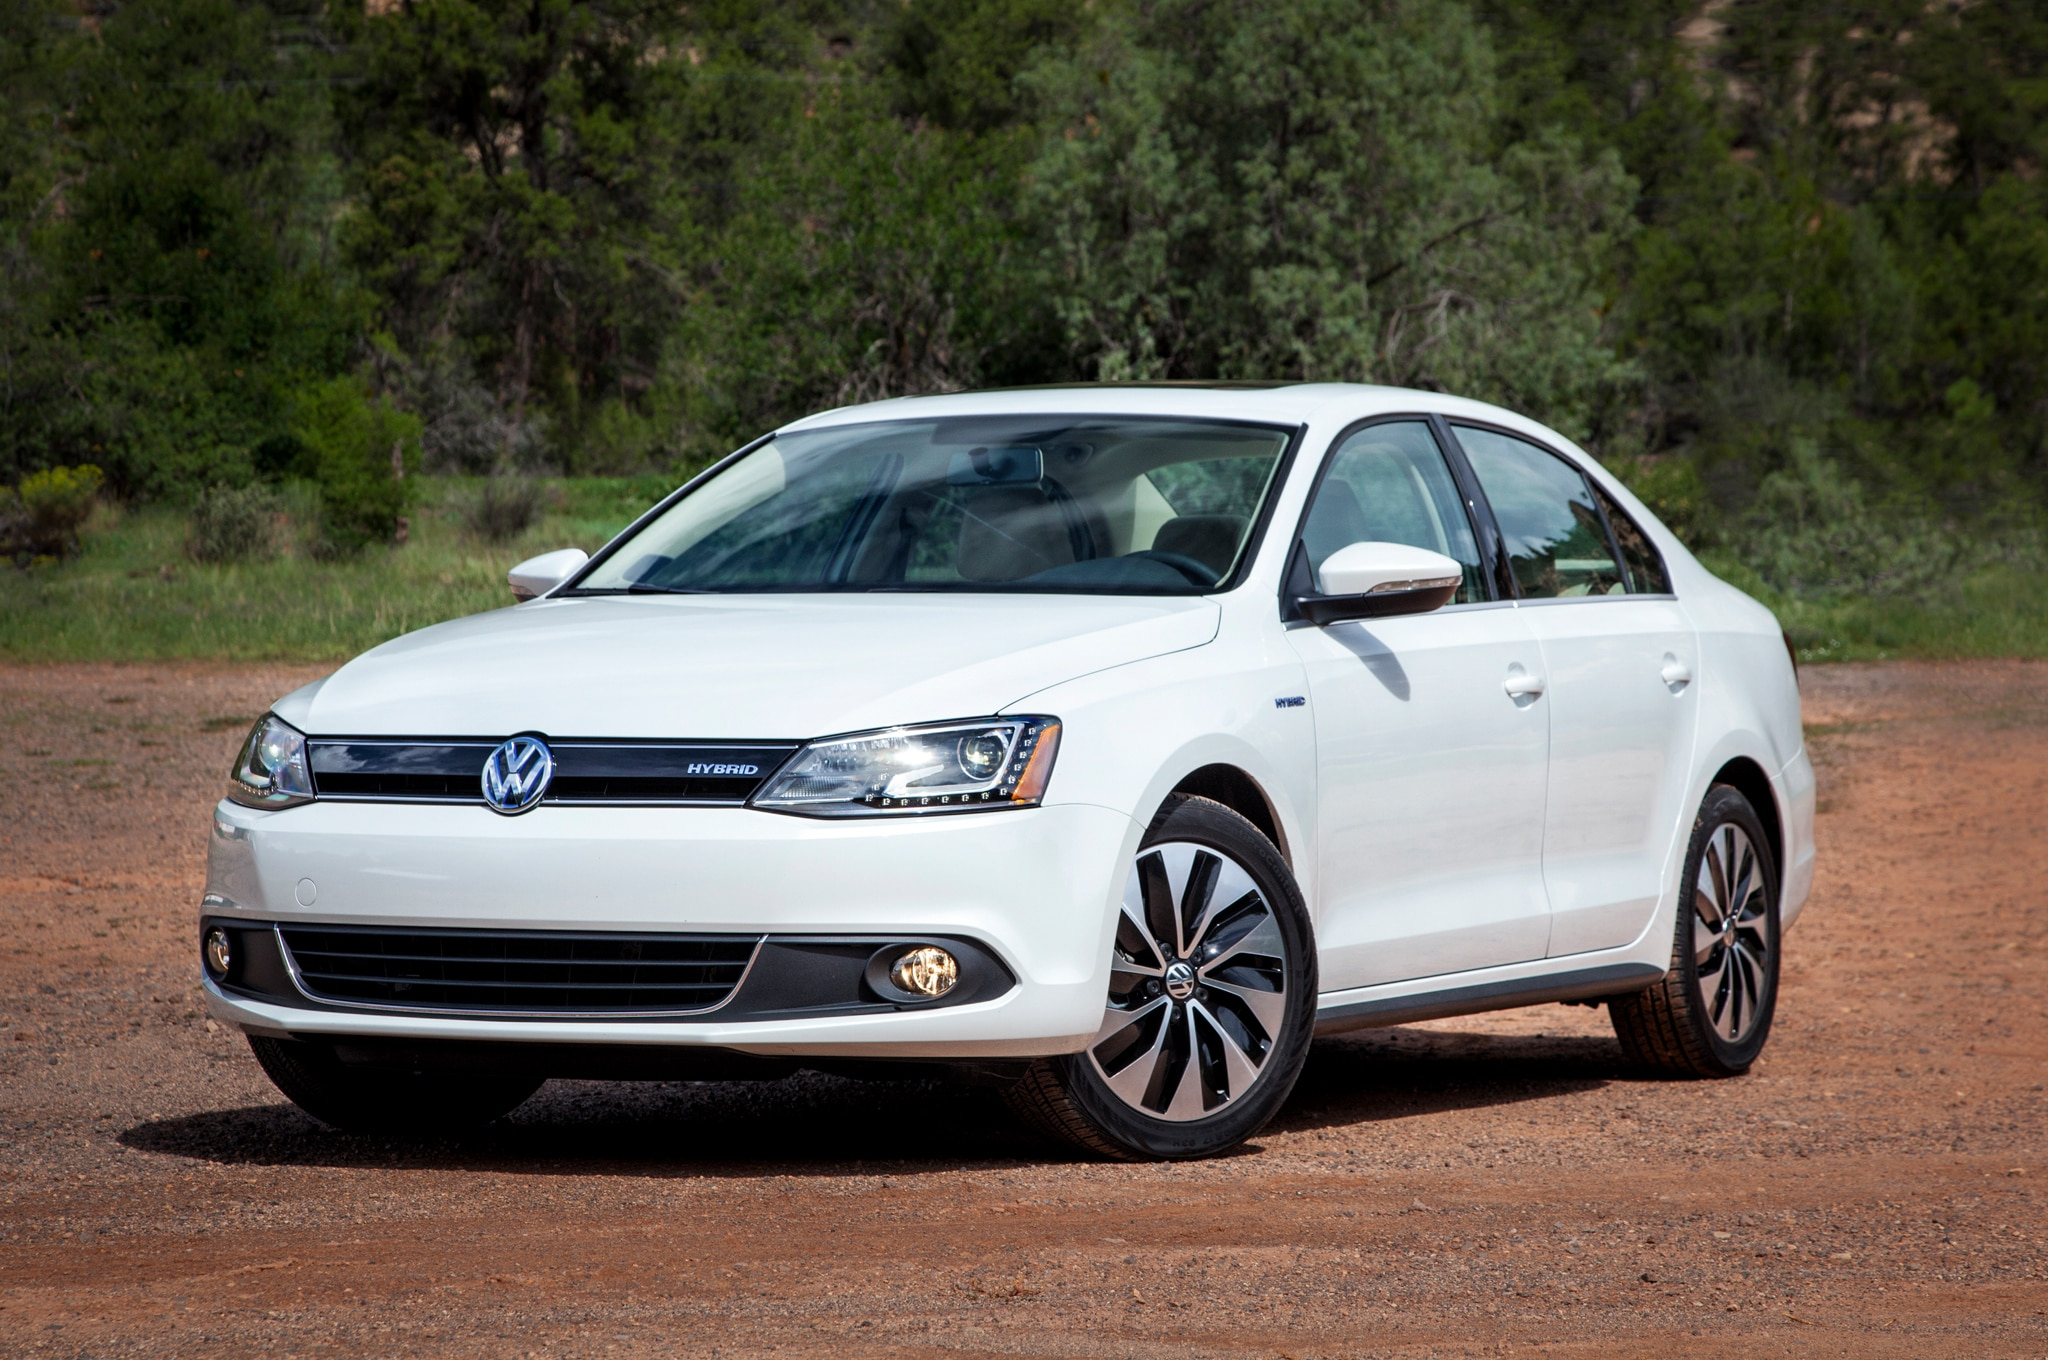 recalls volkswagen beetle and jetta ford mustang acura tlx. Black Bedroom Furniture Sets. Home Design Ideas